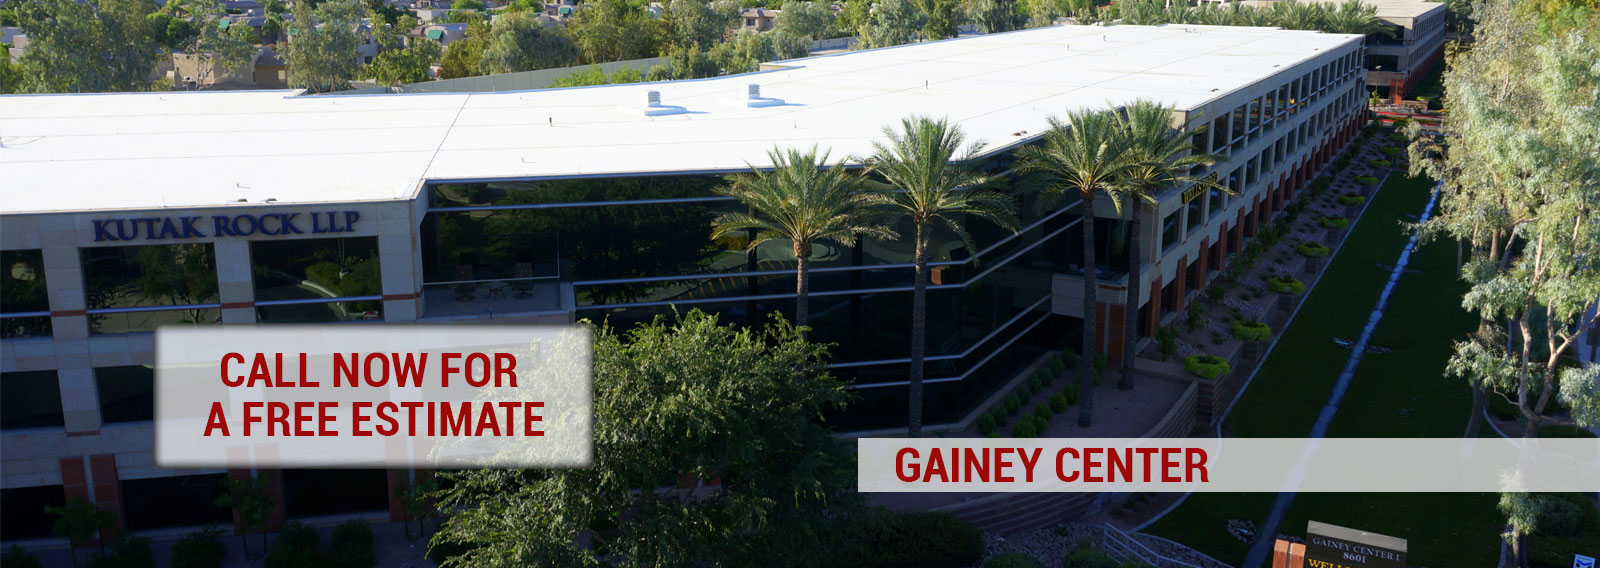 Gainey Center Foam Roofing